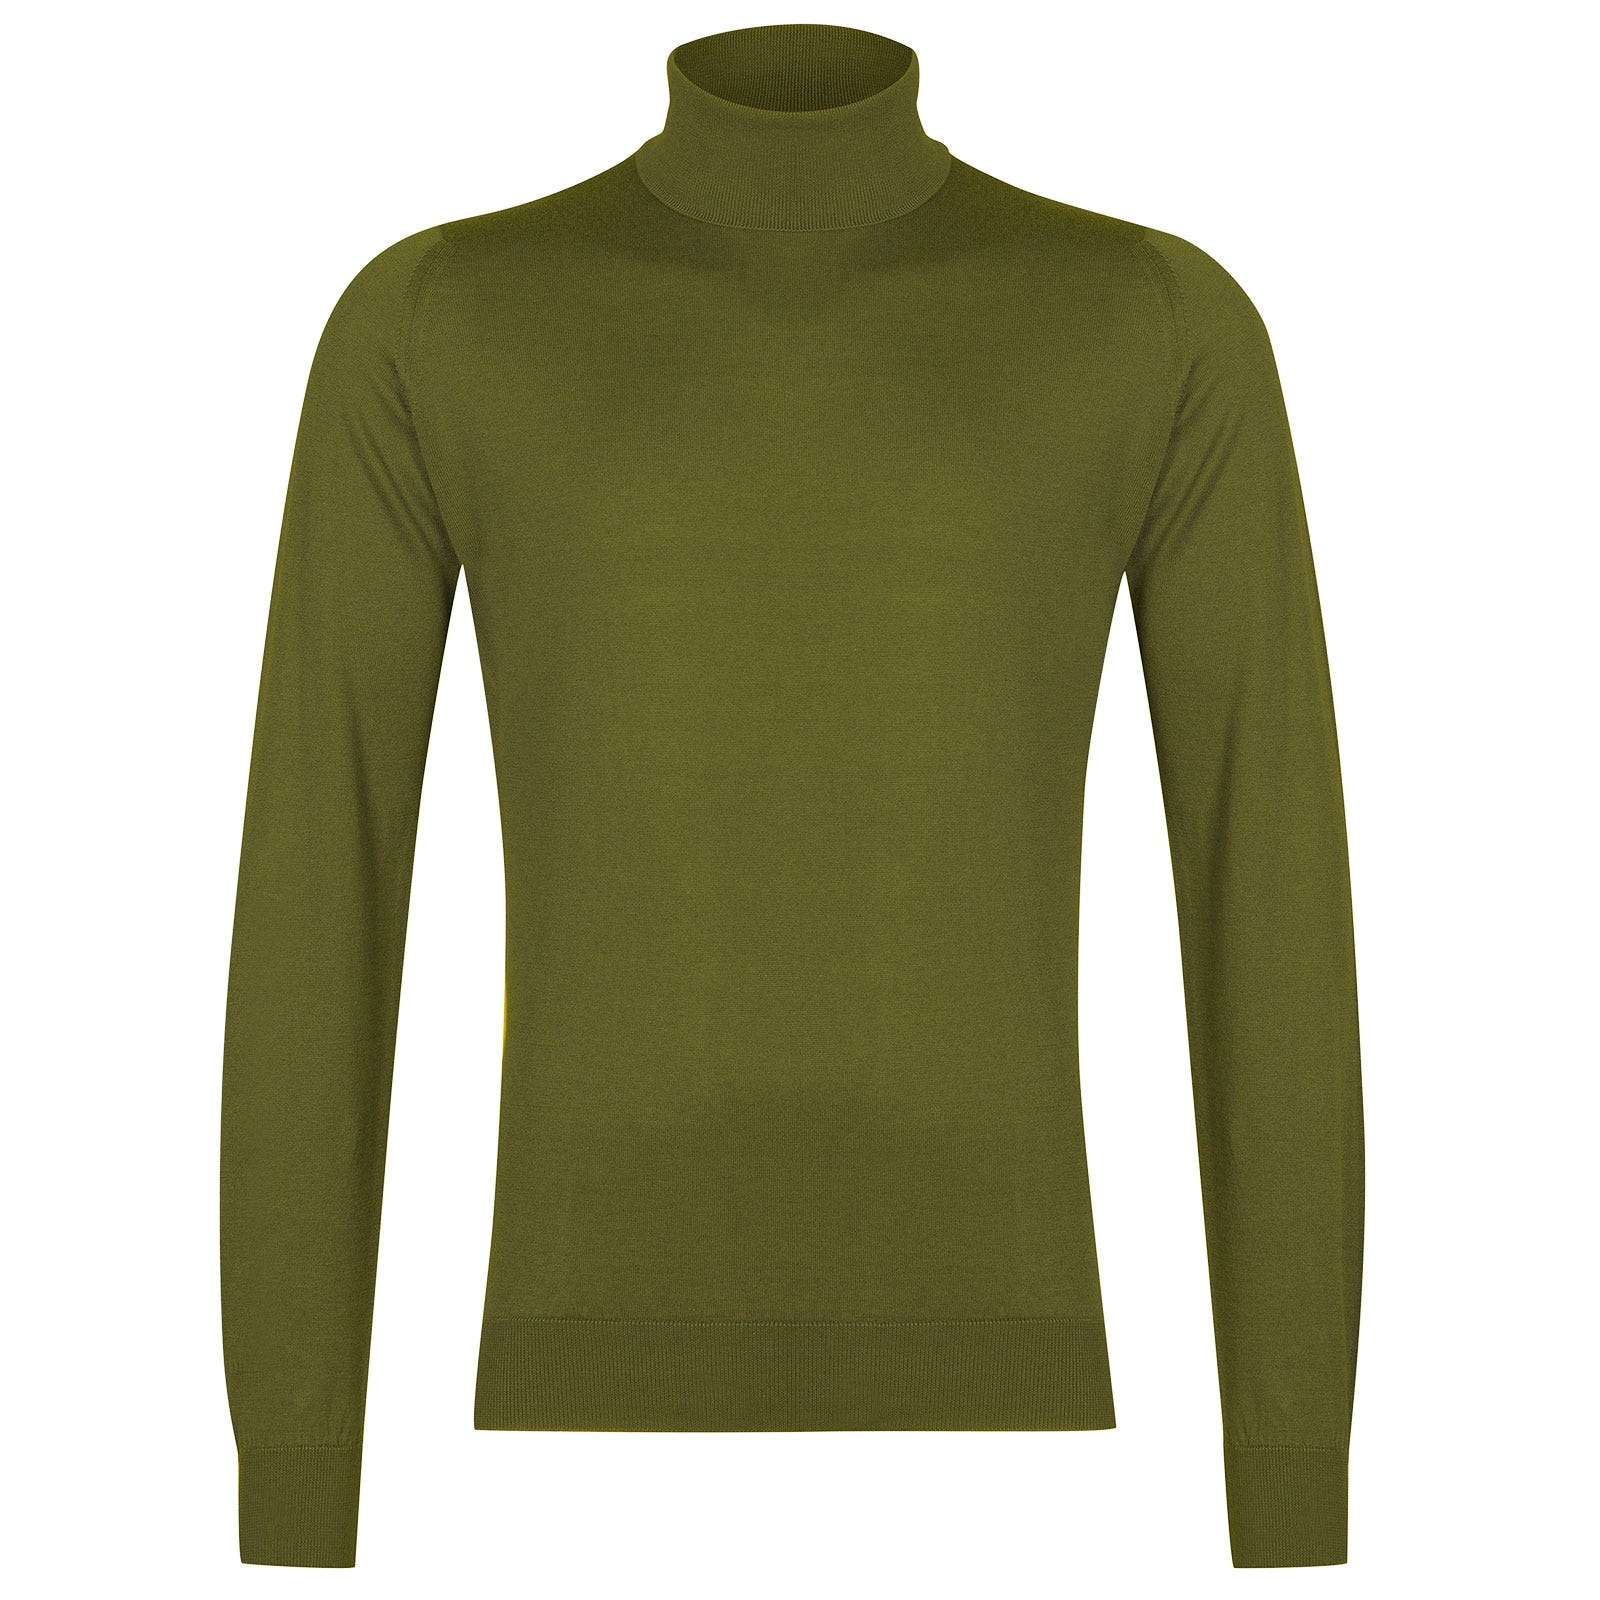 John Smedley Hawley Sea Island Cotton Pullover in Lumsdale Green-XL